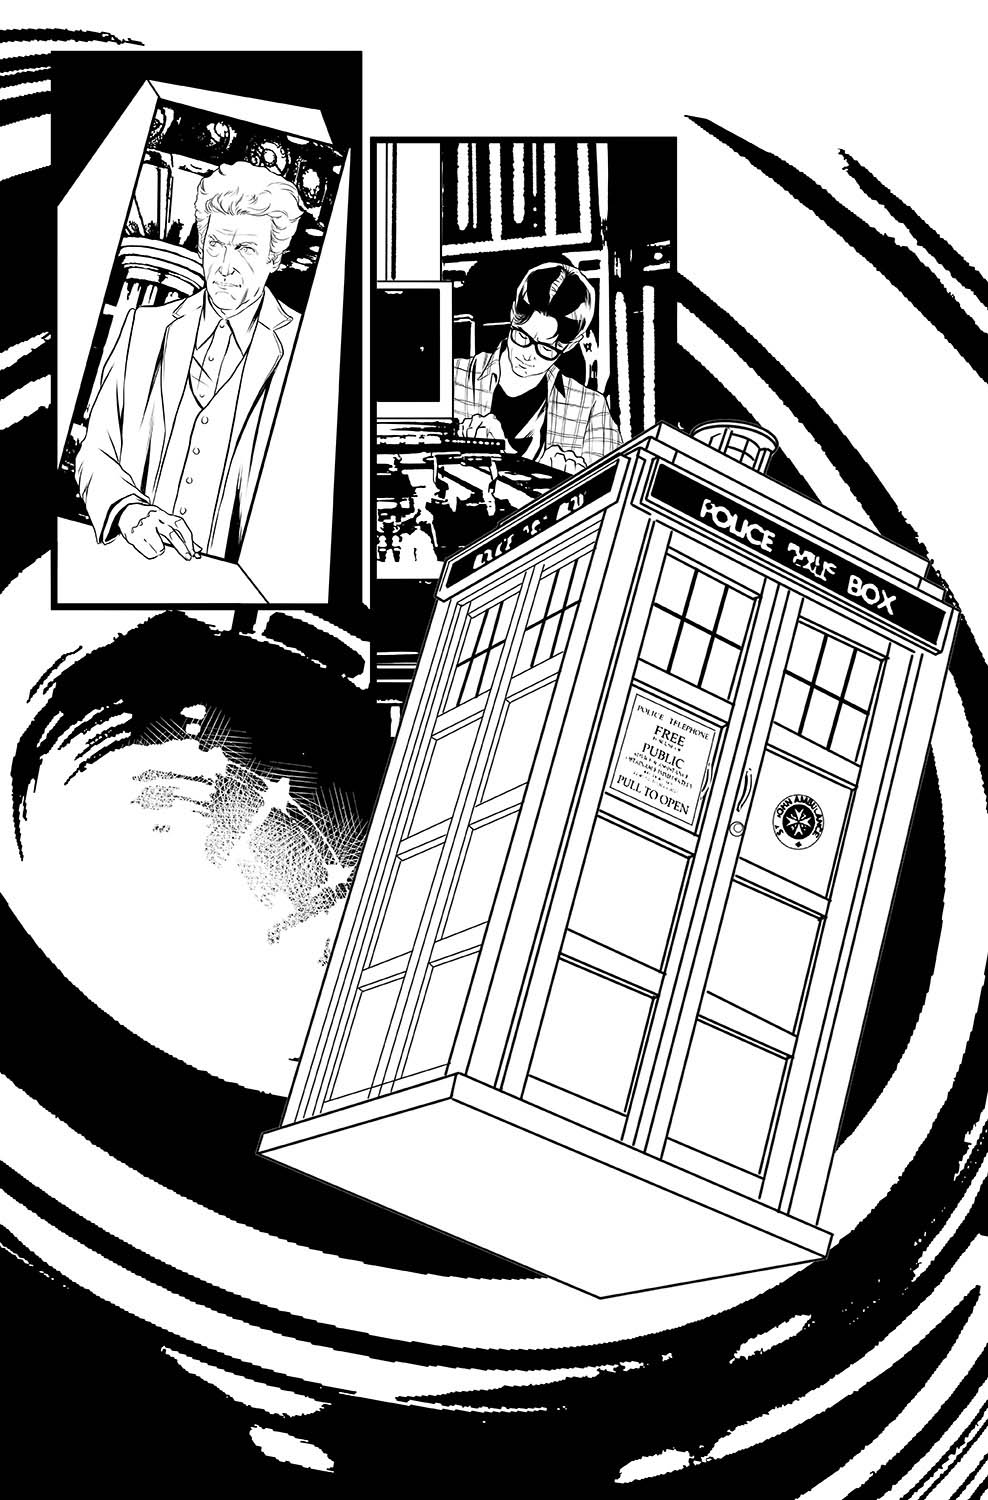 pasquale-qualano-portfolio-interiors-Doctor-Who-12th-Doctor-Ghost-Stories-#3-Page-#10---